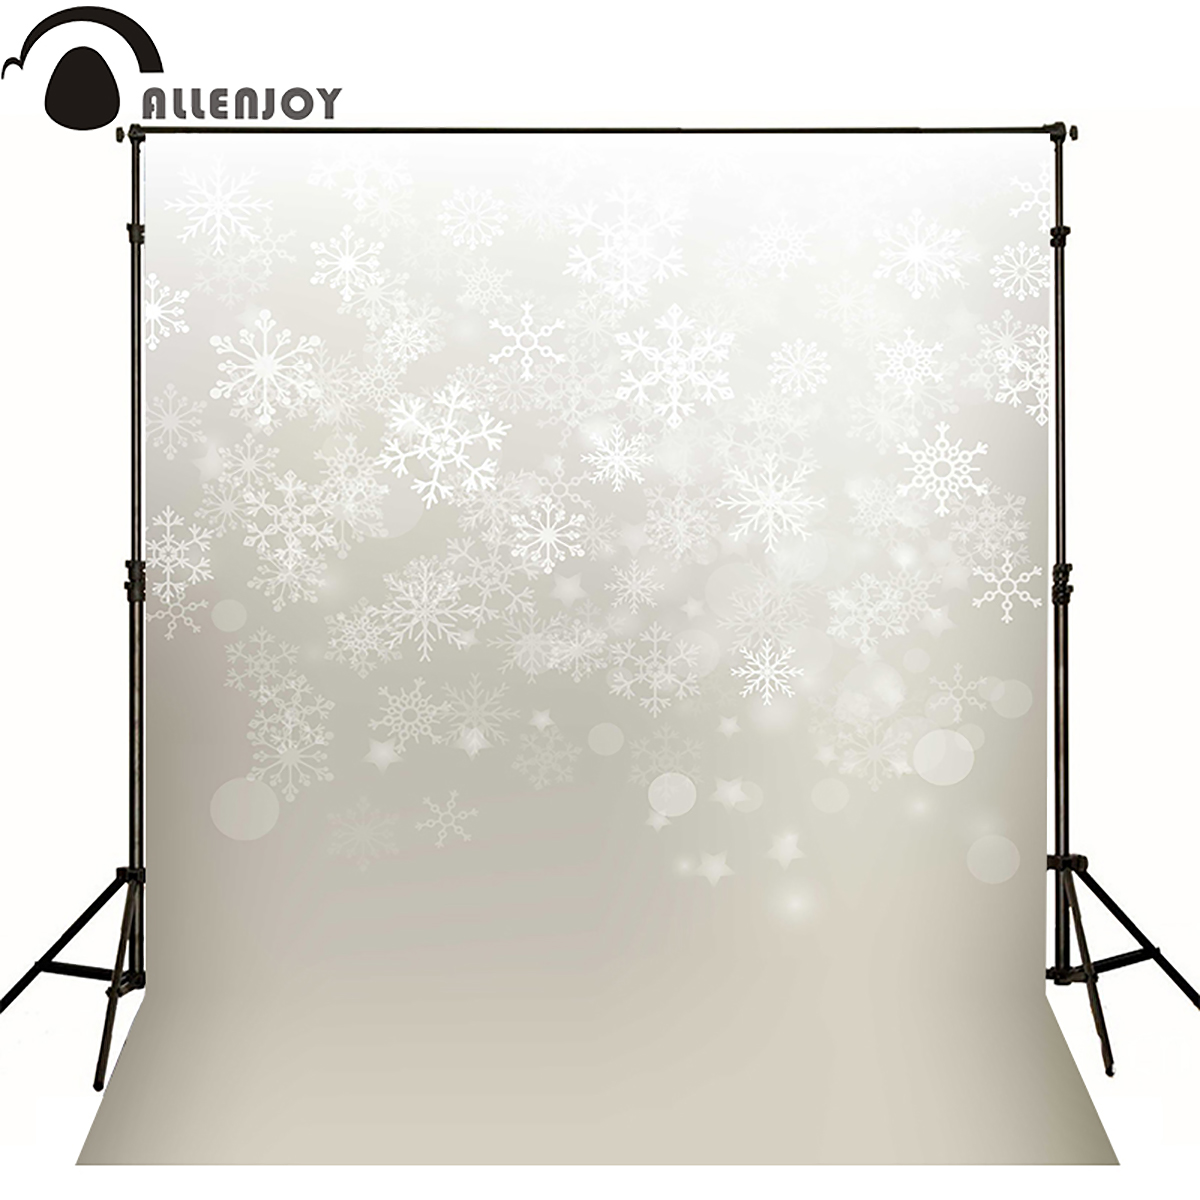 Allen joy christmas photography backdrops xmas snowflakes winter newborn snow background photocall vinyl fabric cartoon